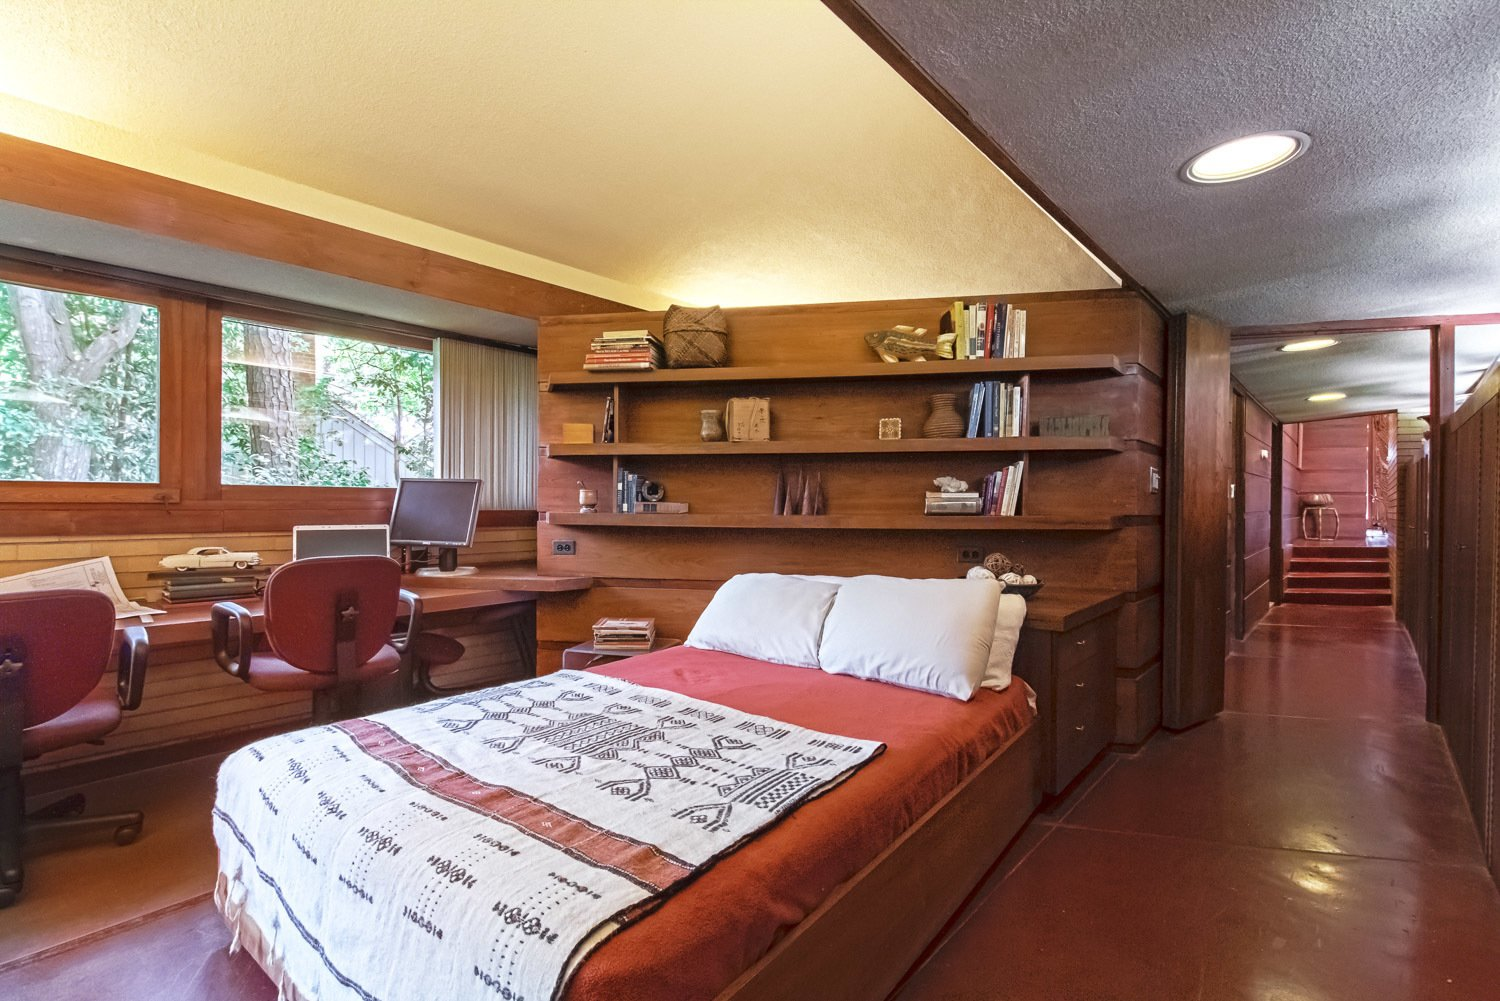 You Can Own One of Frank Lloyd Wright's Final Homes for $2.75 Million - Photo 5 of 7